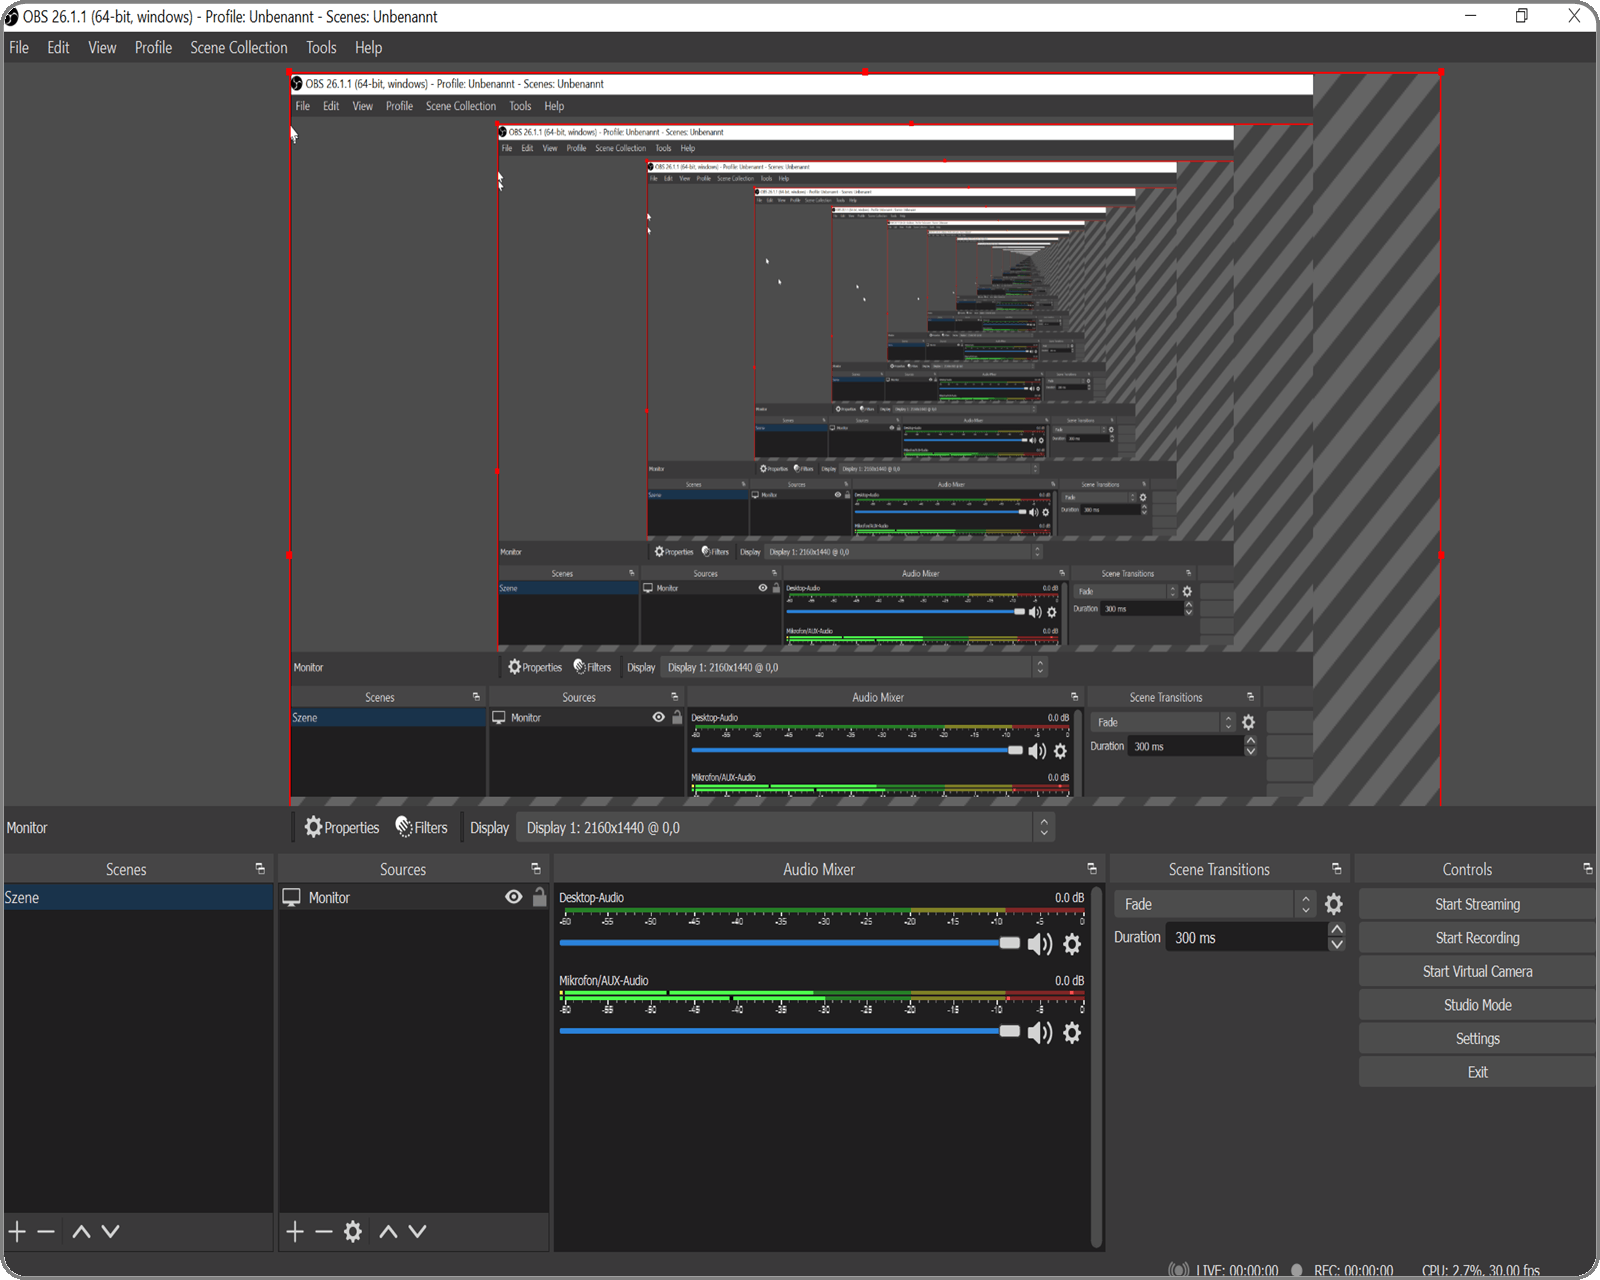 obs_14_display_capture_on_one_monitor.png